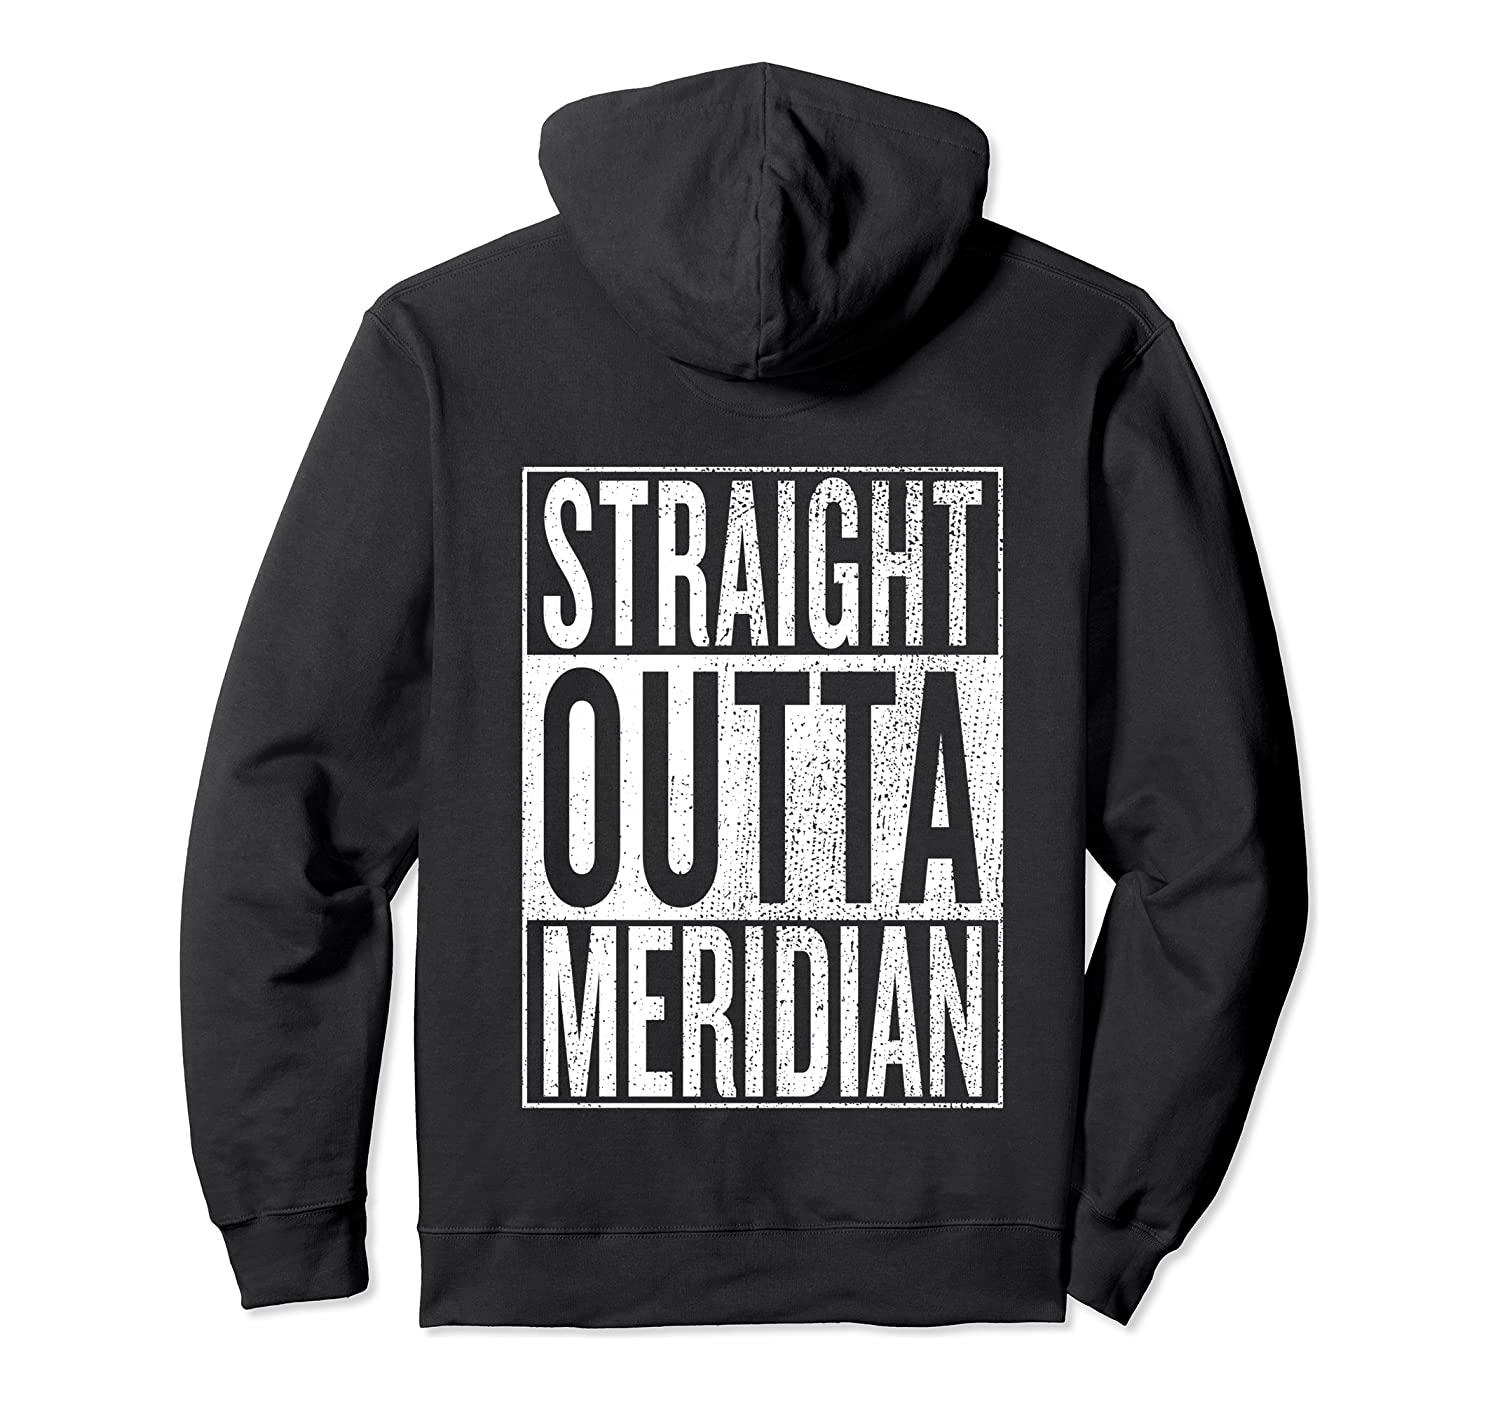 Straight Outta Meridian Great Travel Outfit & Gift Idea Pullover Hoodie Unisex Size S-5XL with Color Black/Grey/Navy/Royal Blue/Dark Heather